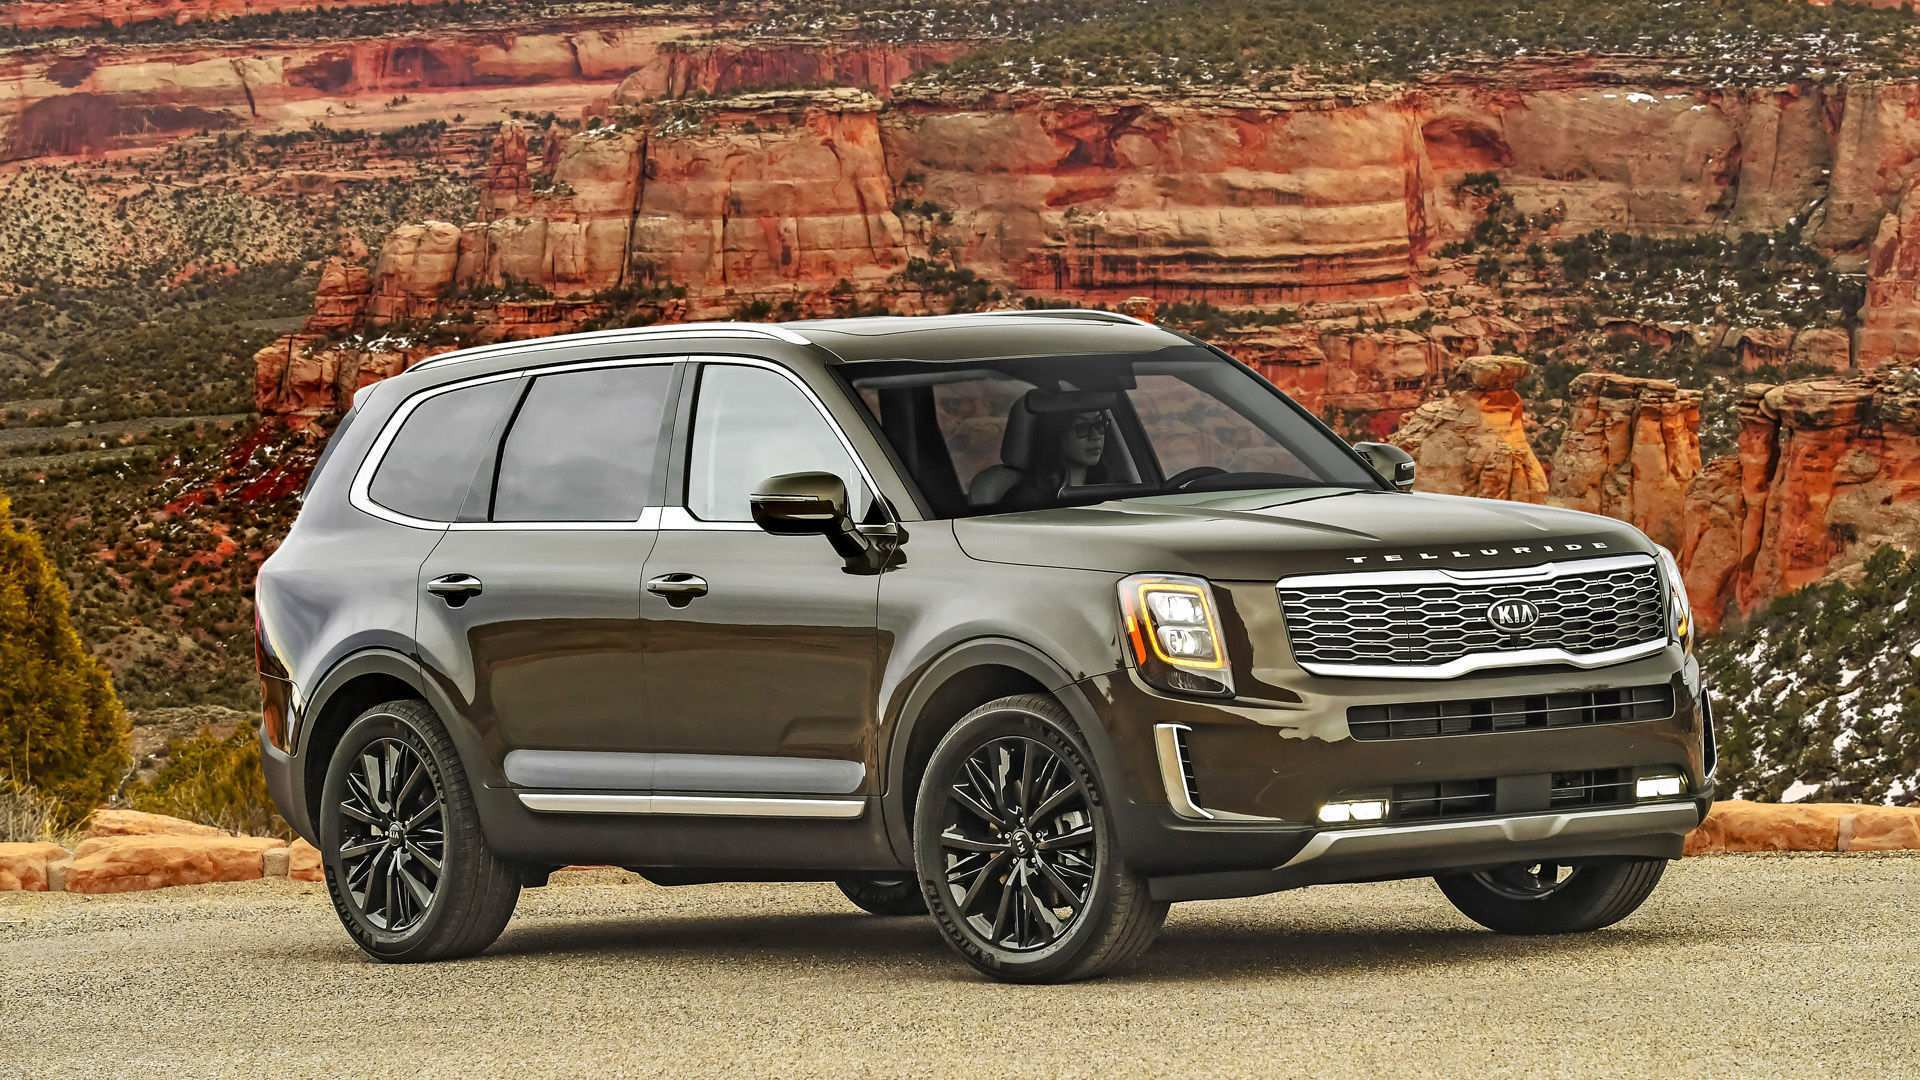 39 New Kia Telluride 2020 For Sale 2 Images